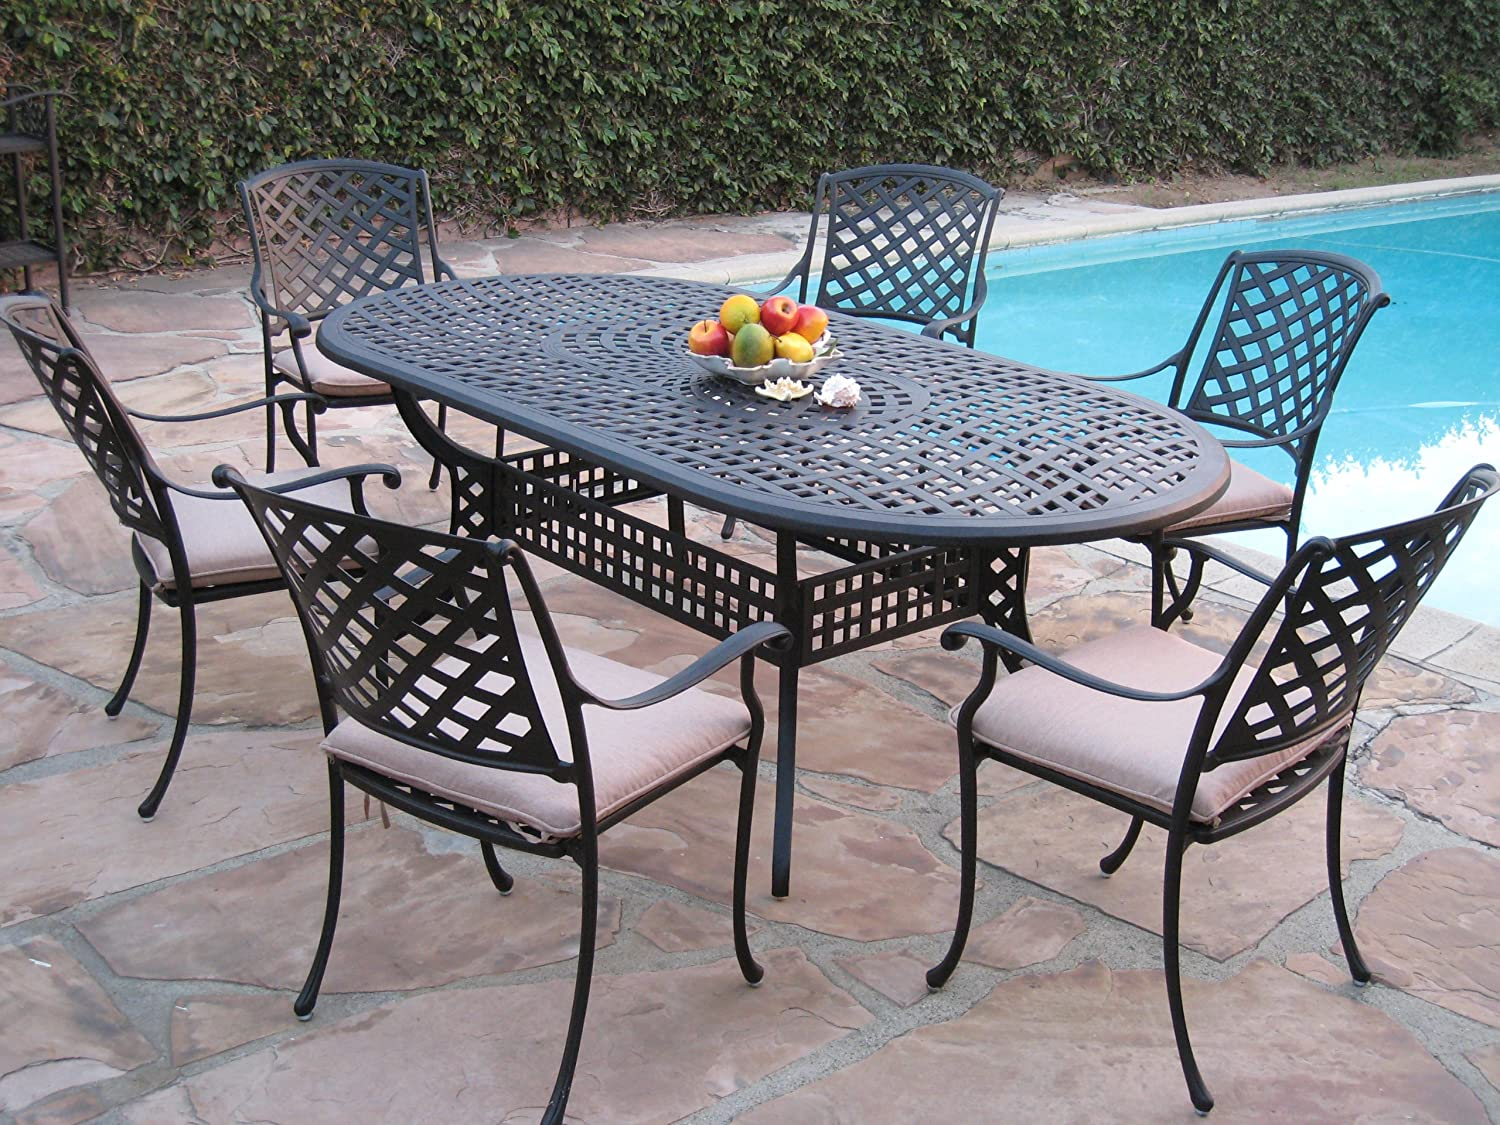 Kawaii collection outdoor cast aluminum patio furniture 7 for Outdoor furniture 7 piece